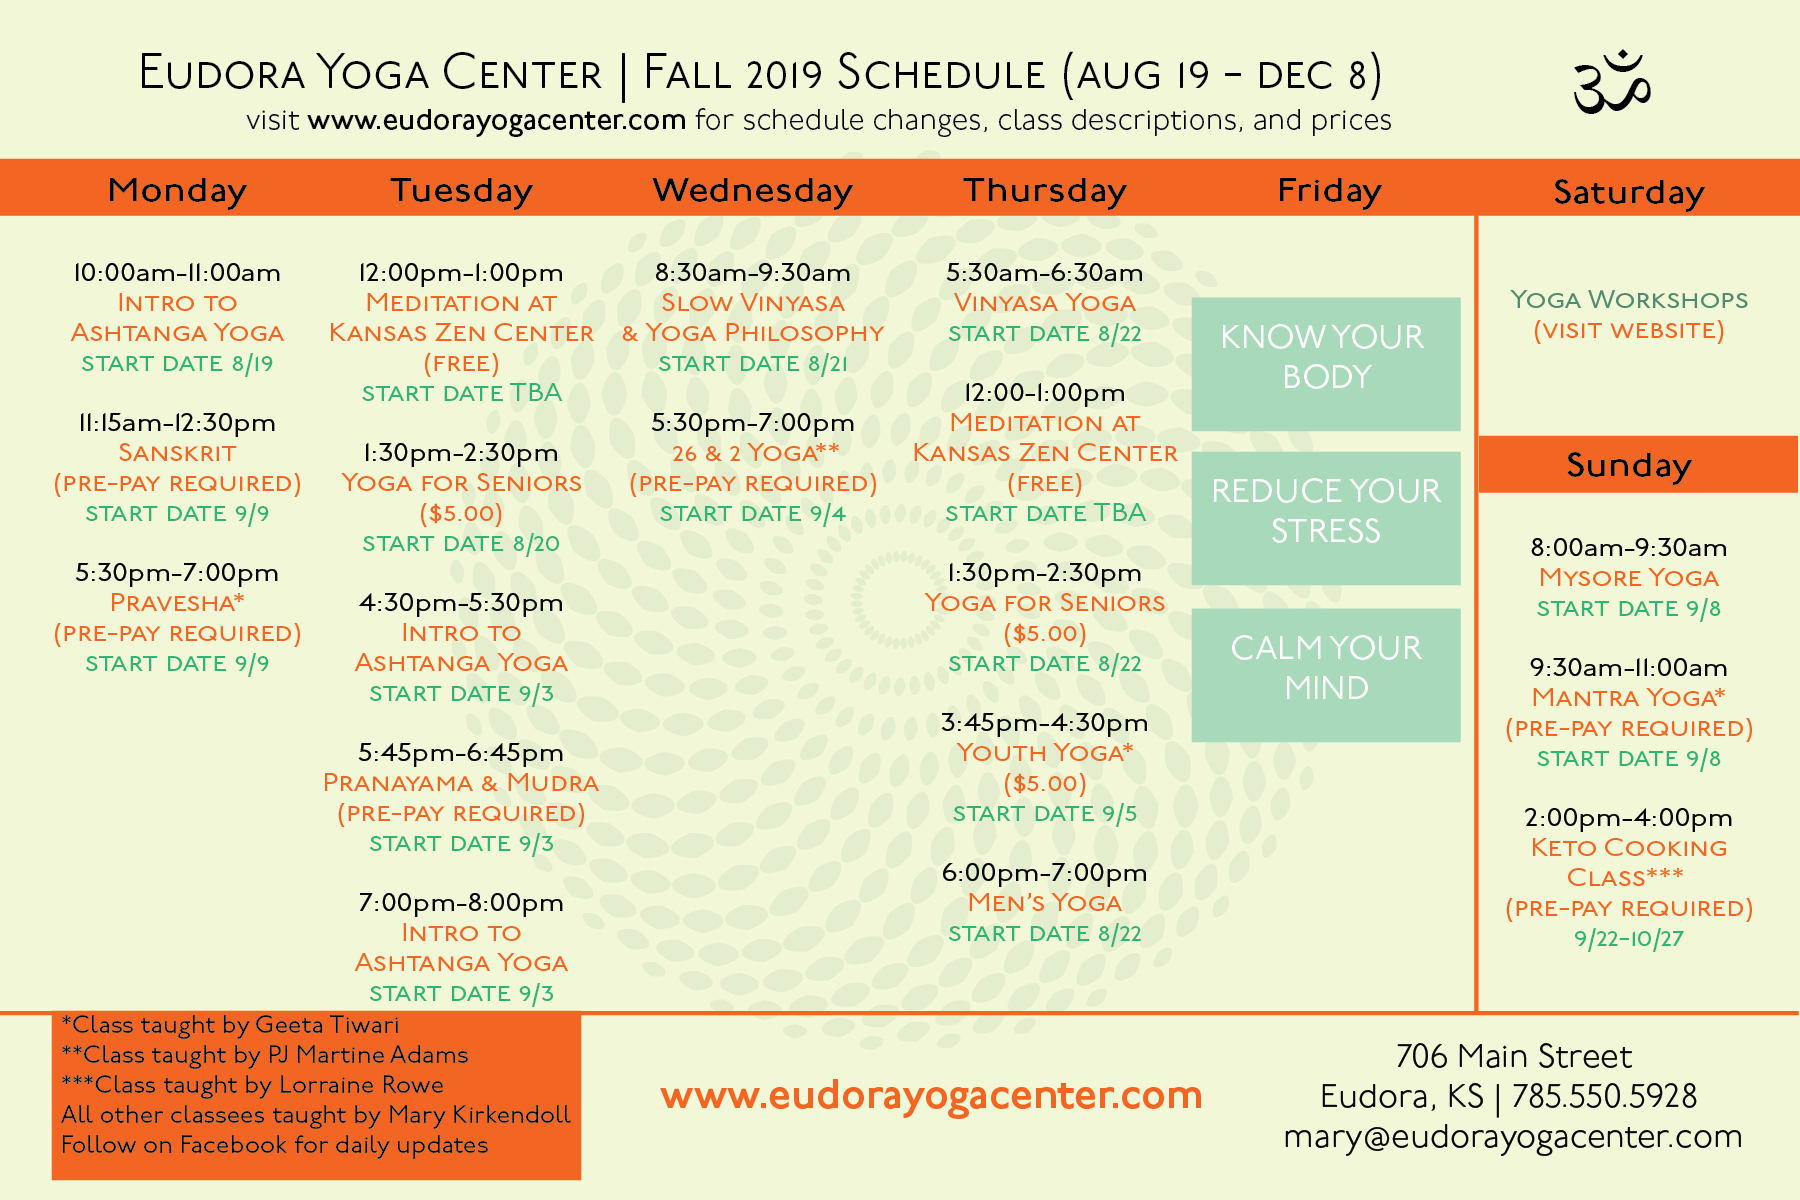 EYC SCHEDULE - FALL 2019